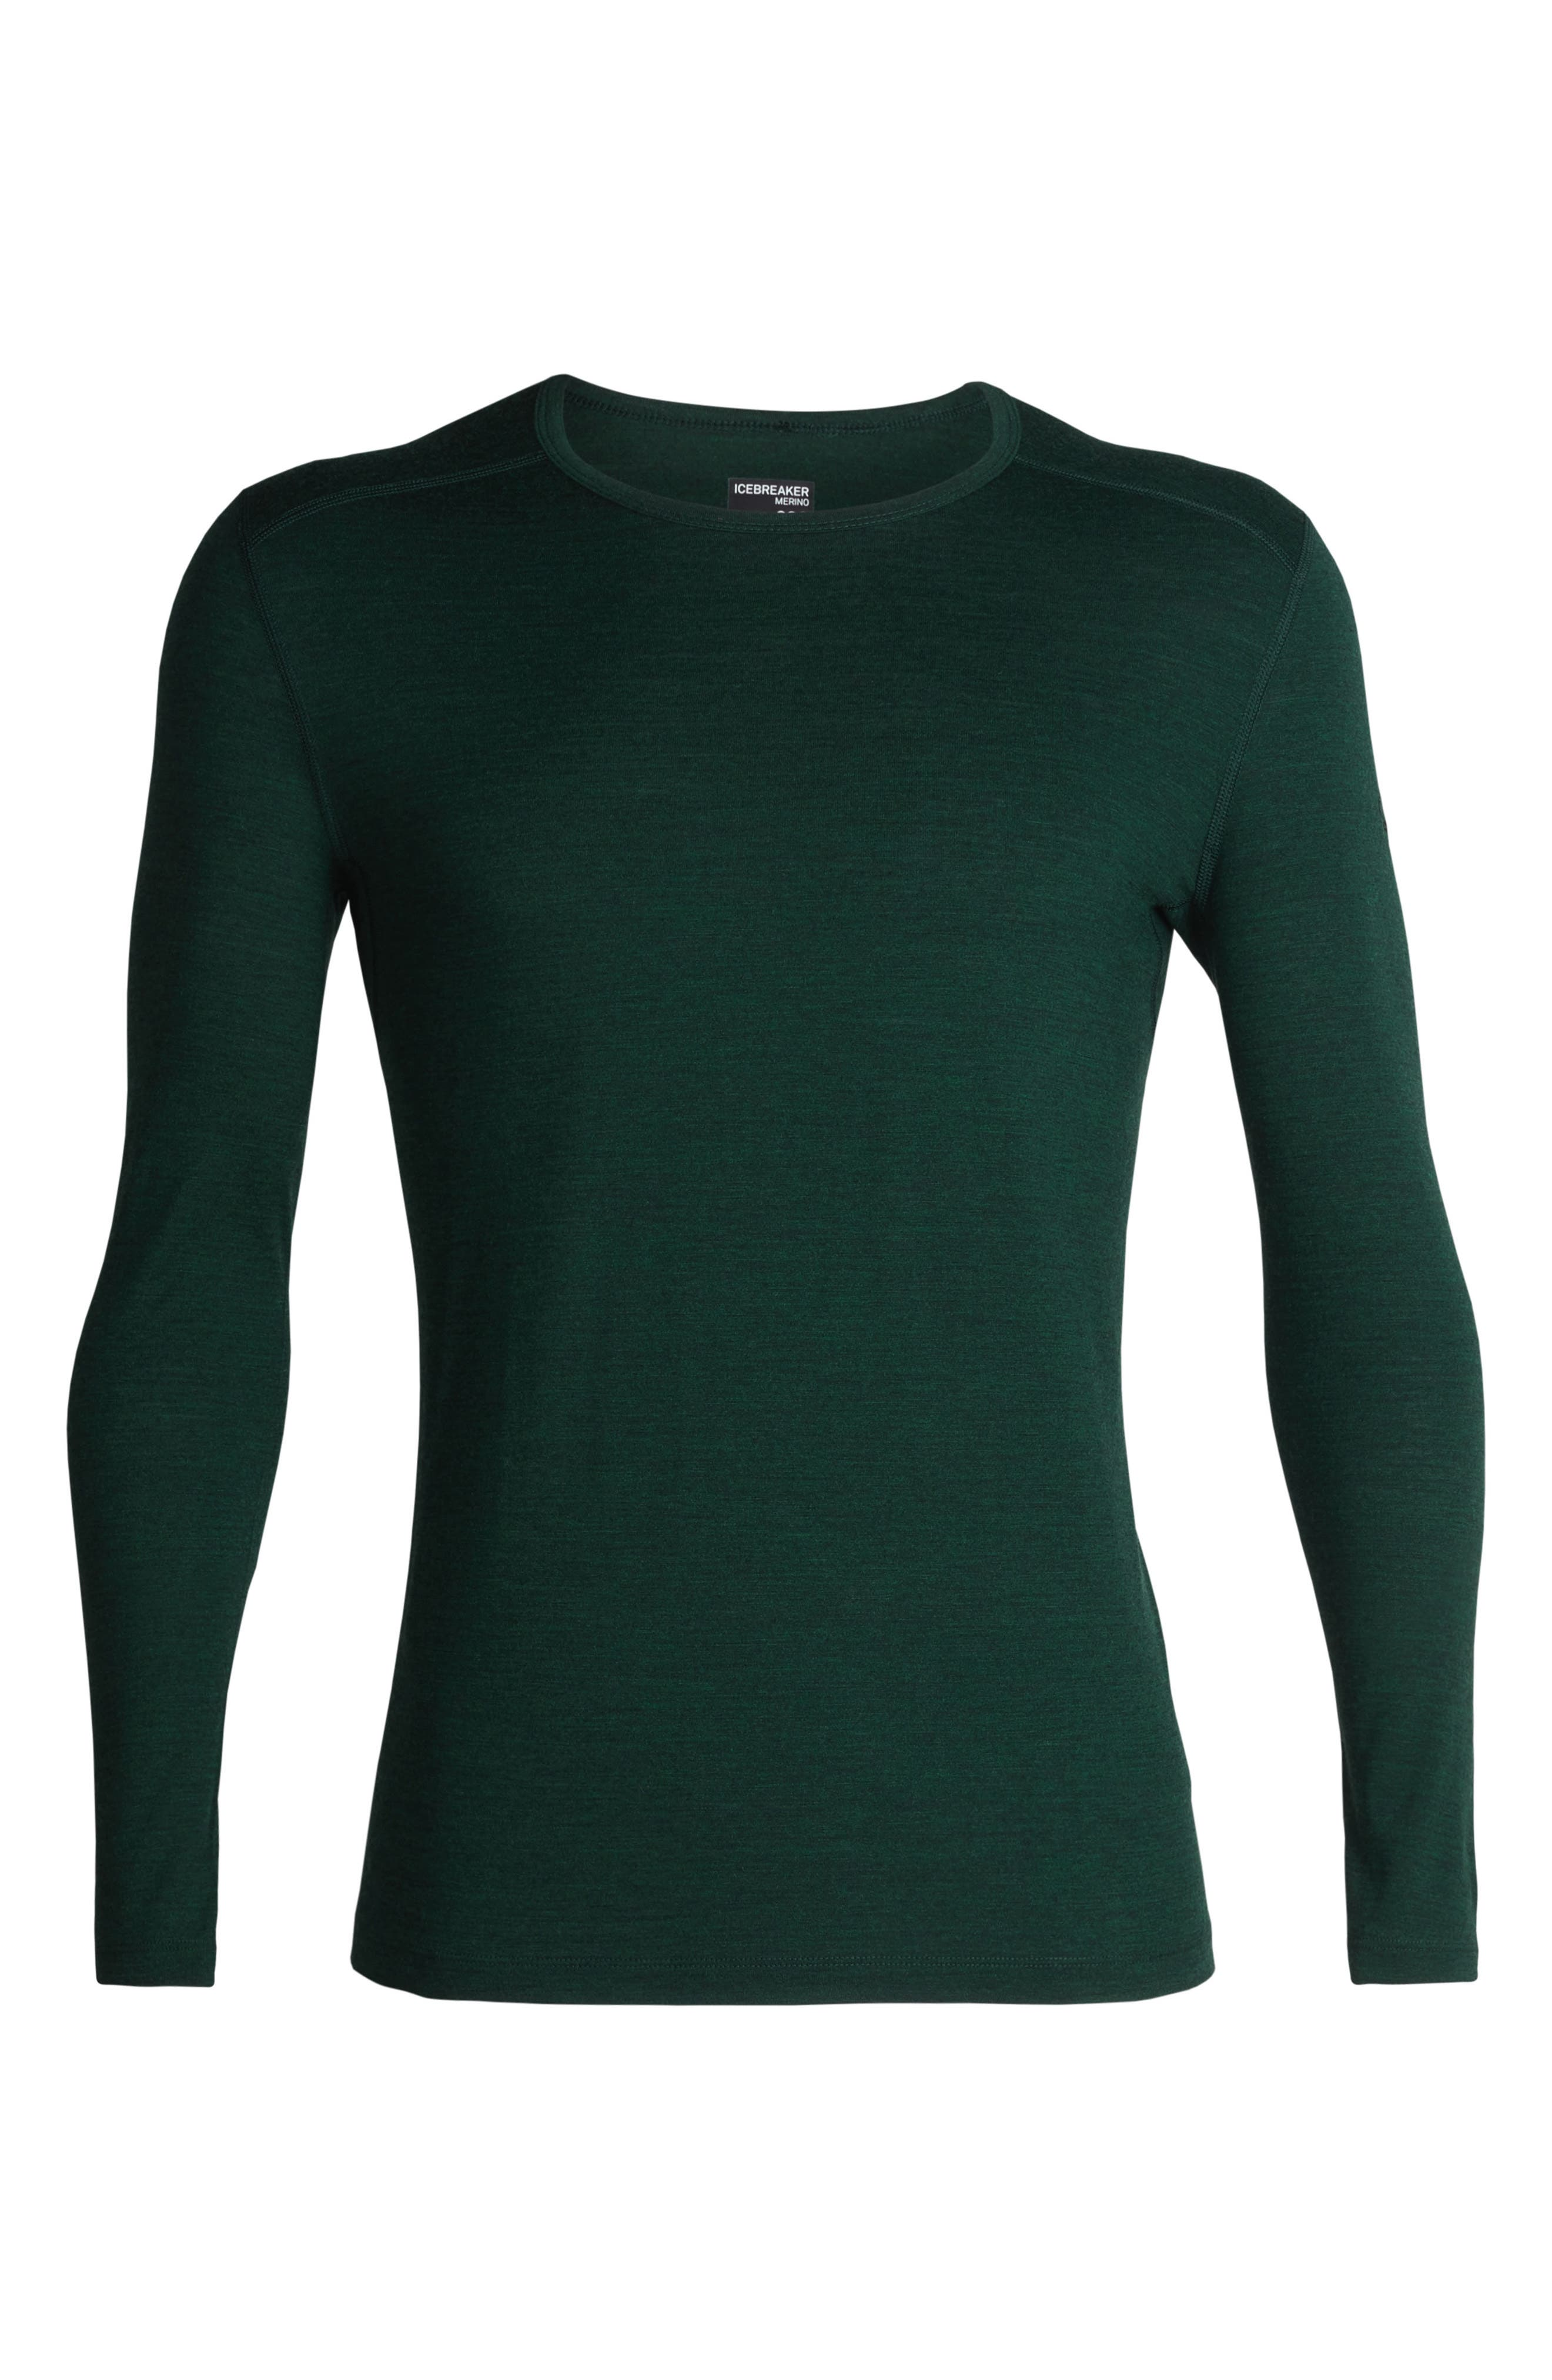 Oasis Slim Merino Wool T-Shirt,                             Alternate thumbnail 6, color,                             IMPERIAL HEATHER